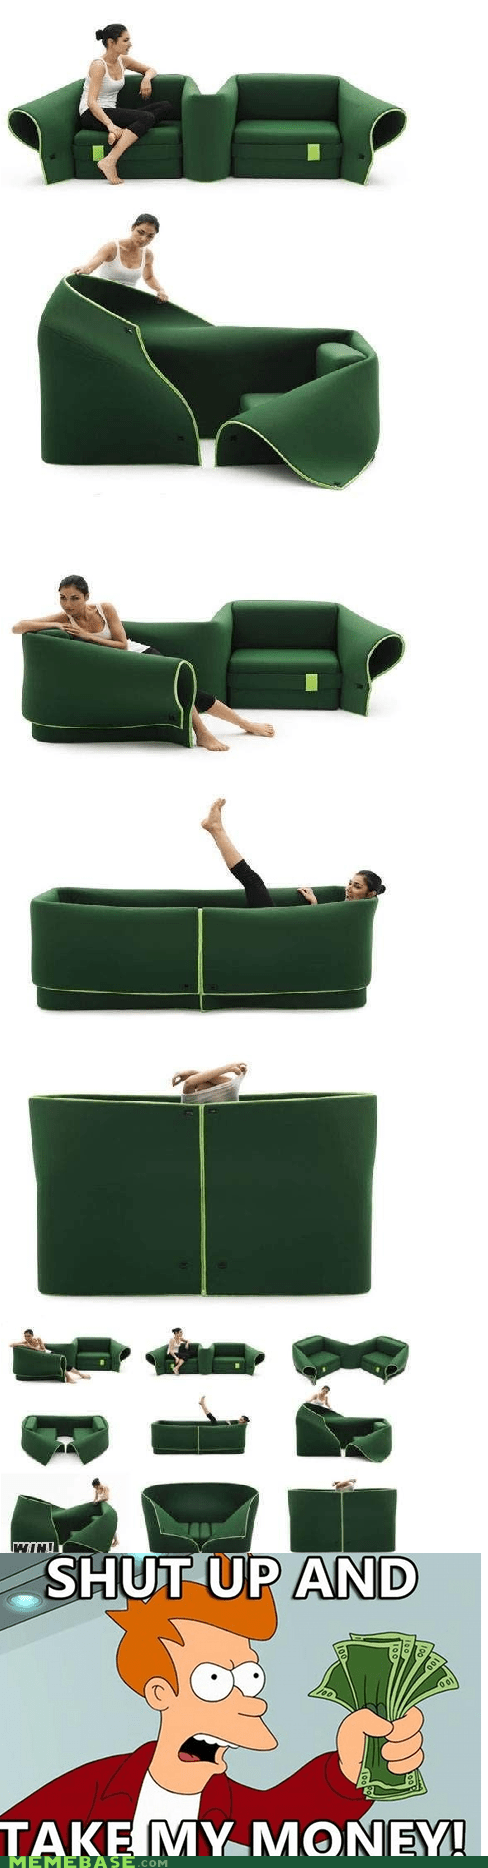 cool,couch,fry,shut up and take my money